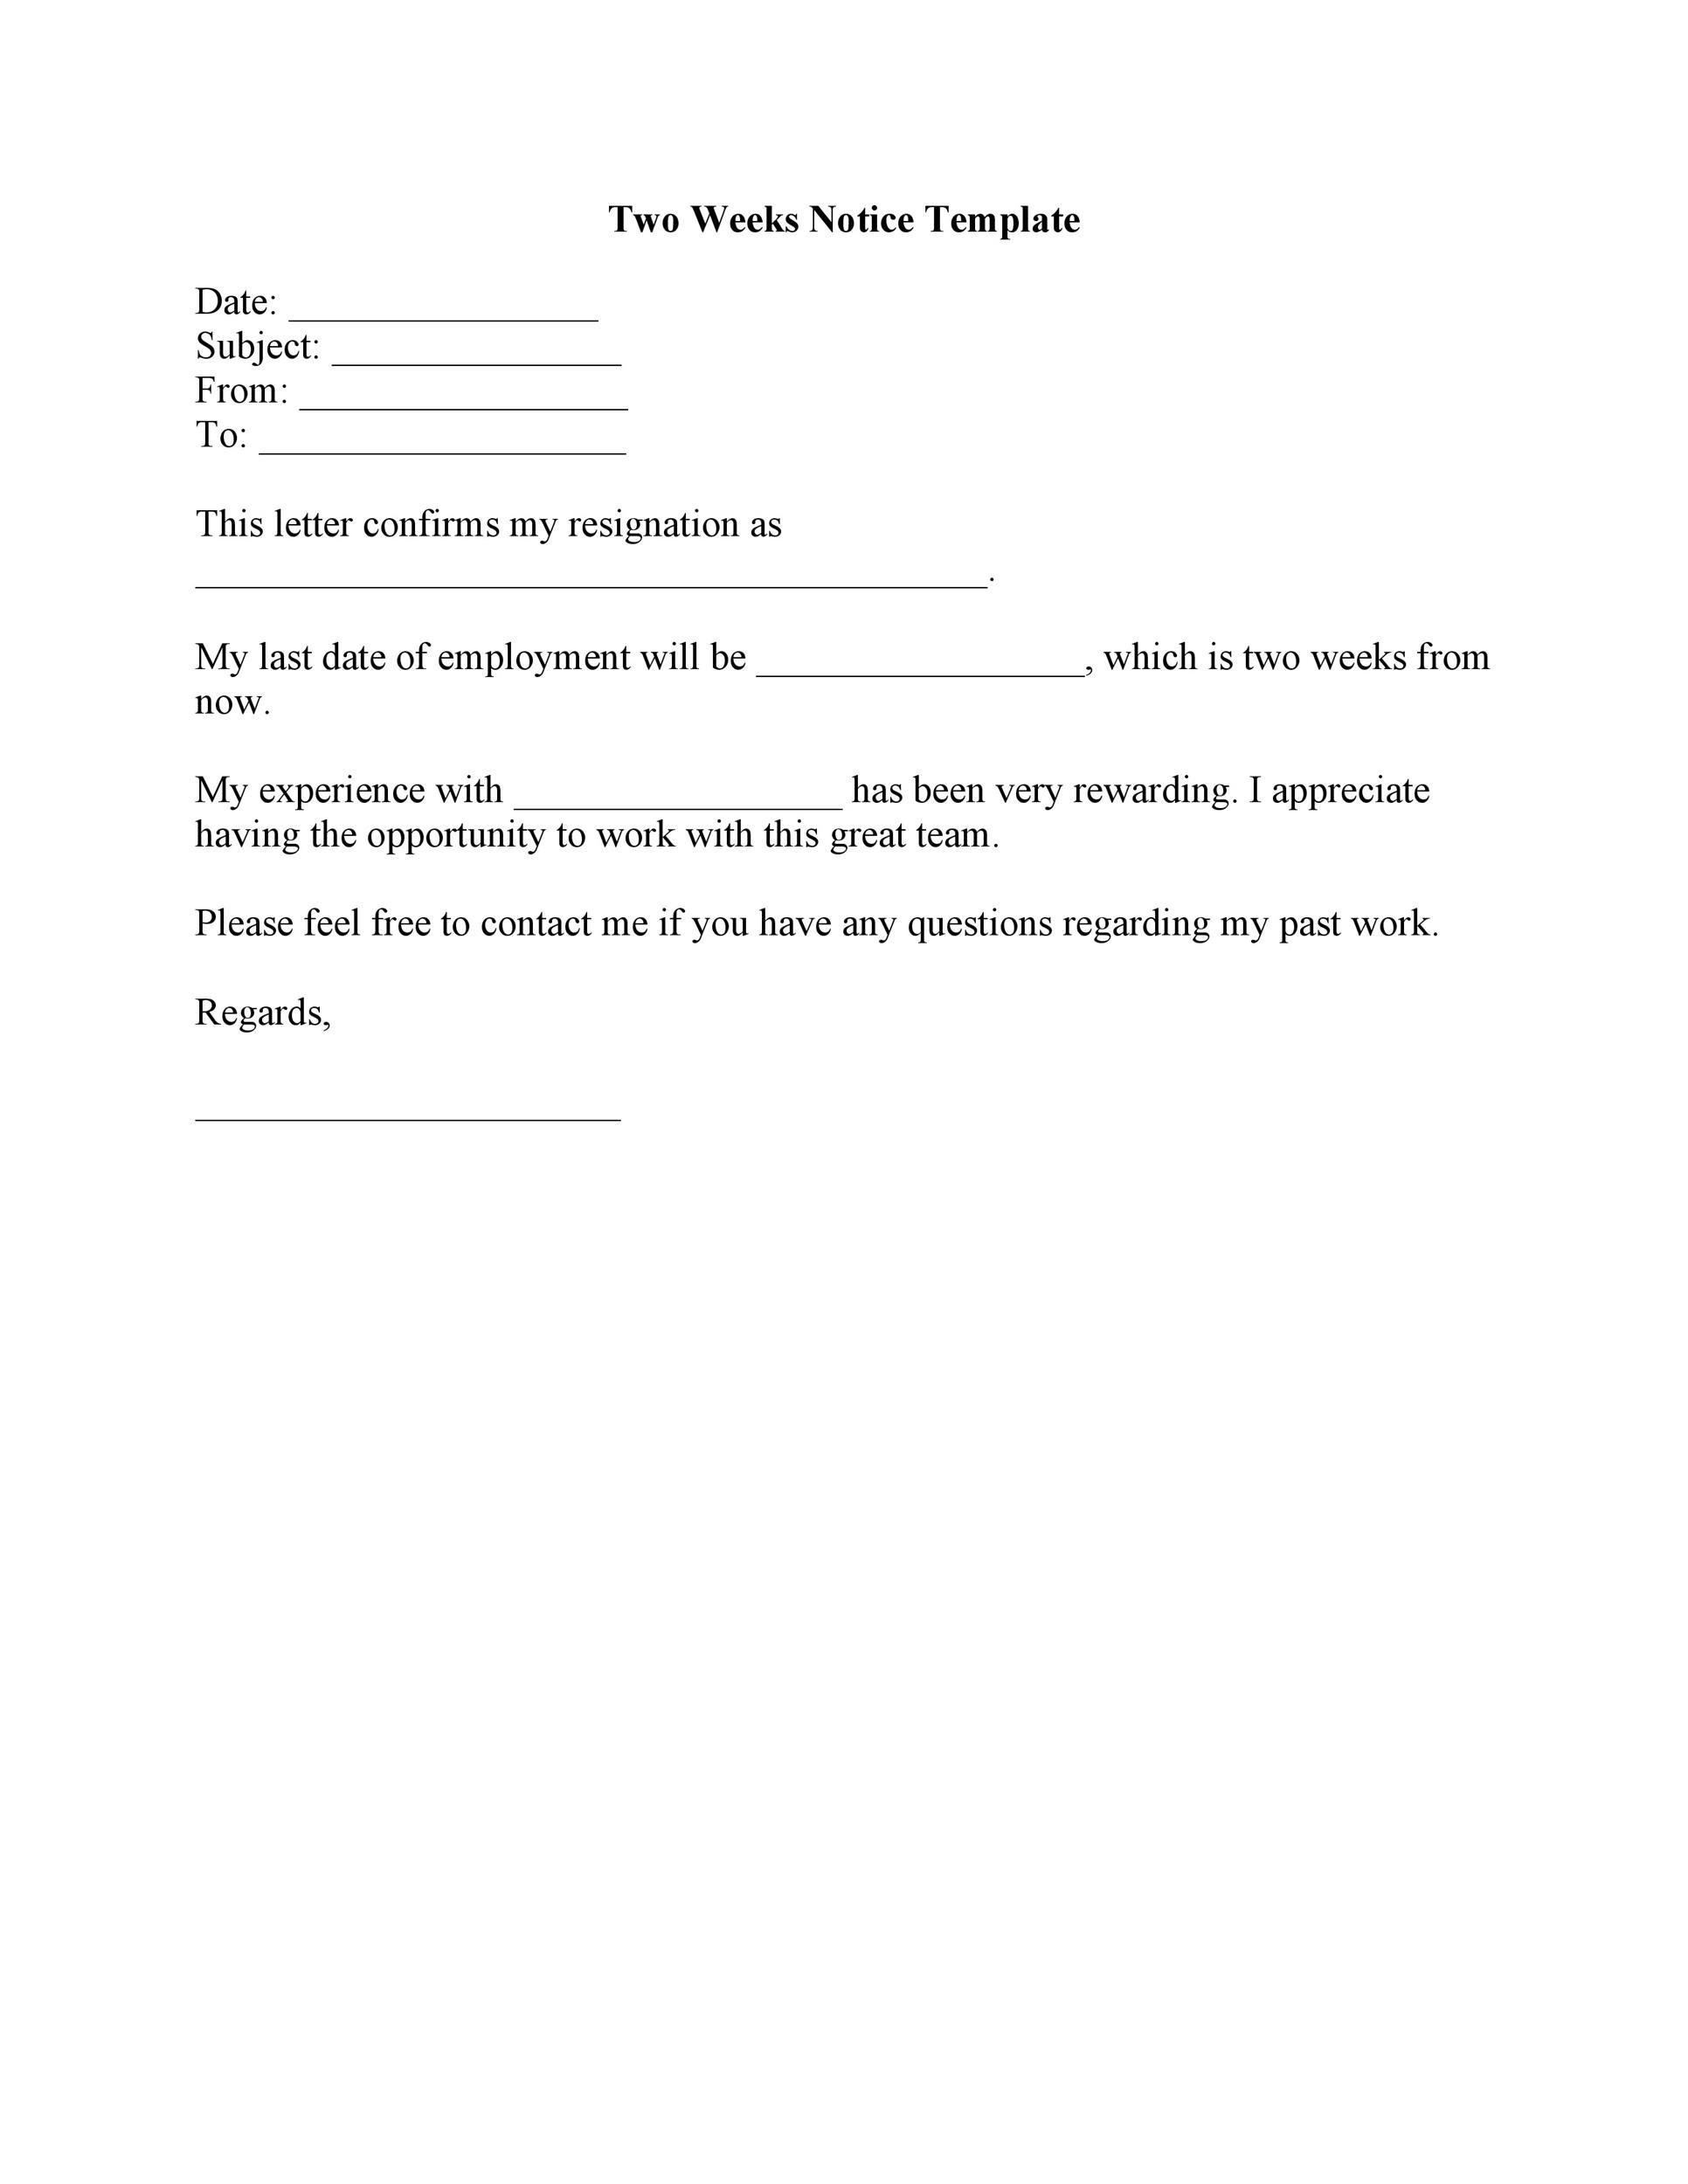 2 weeks notice templates